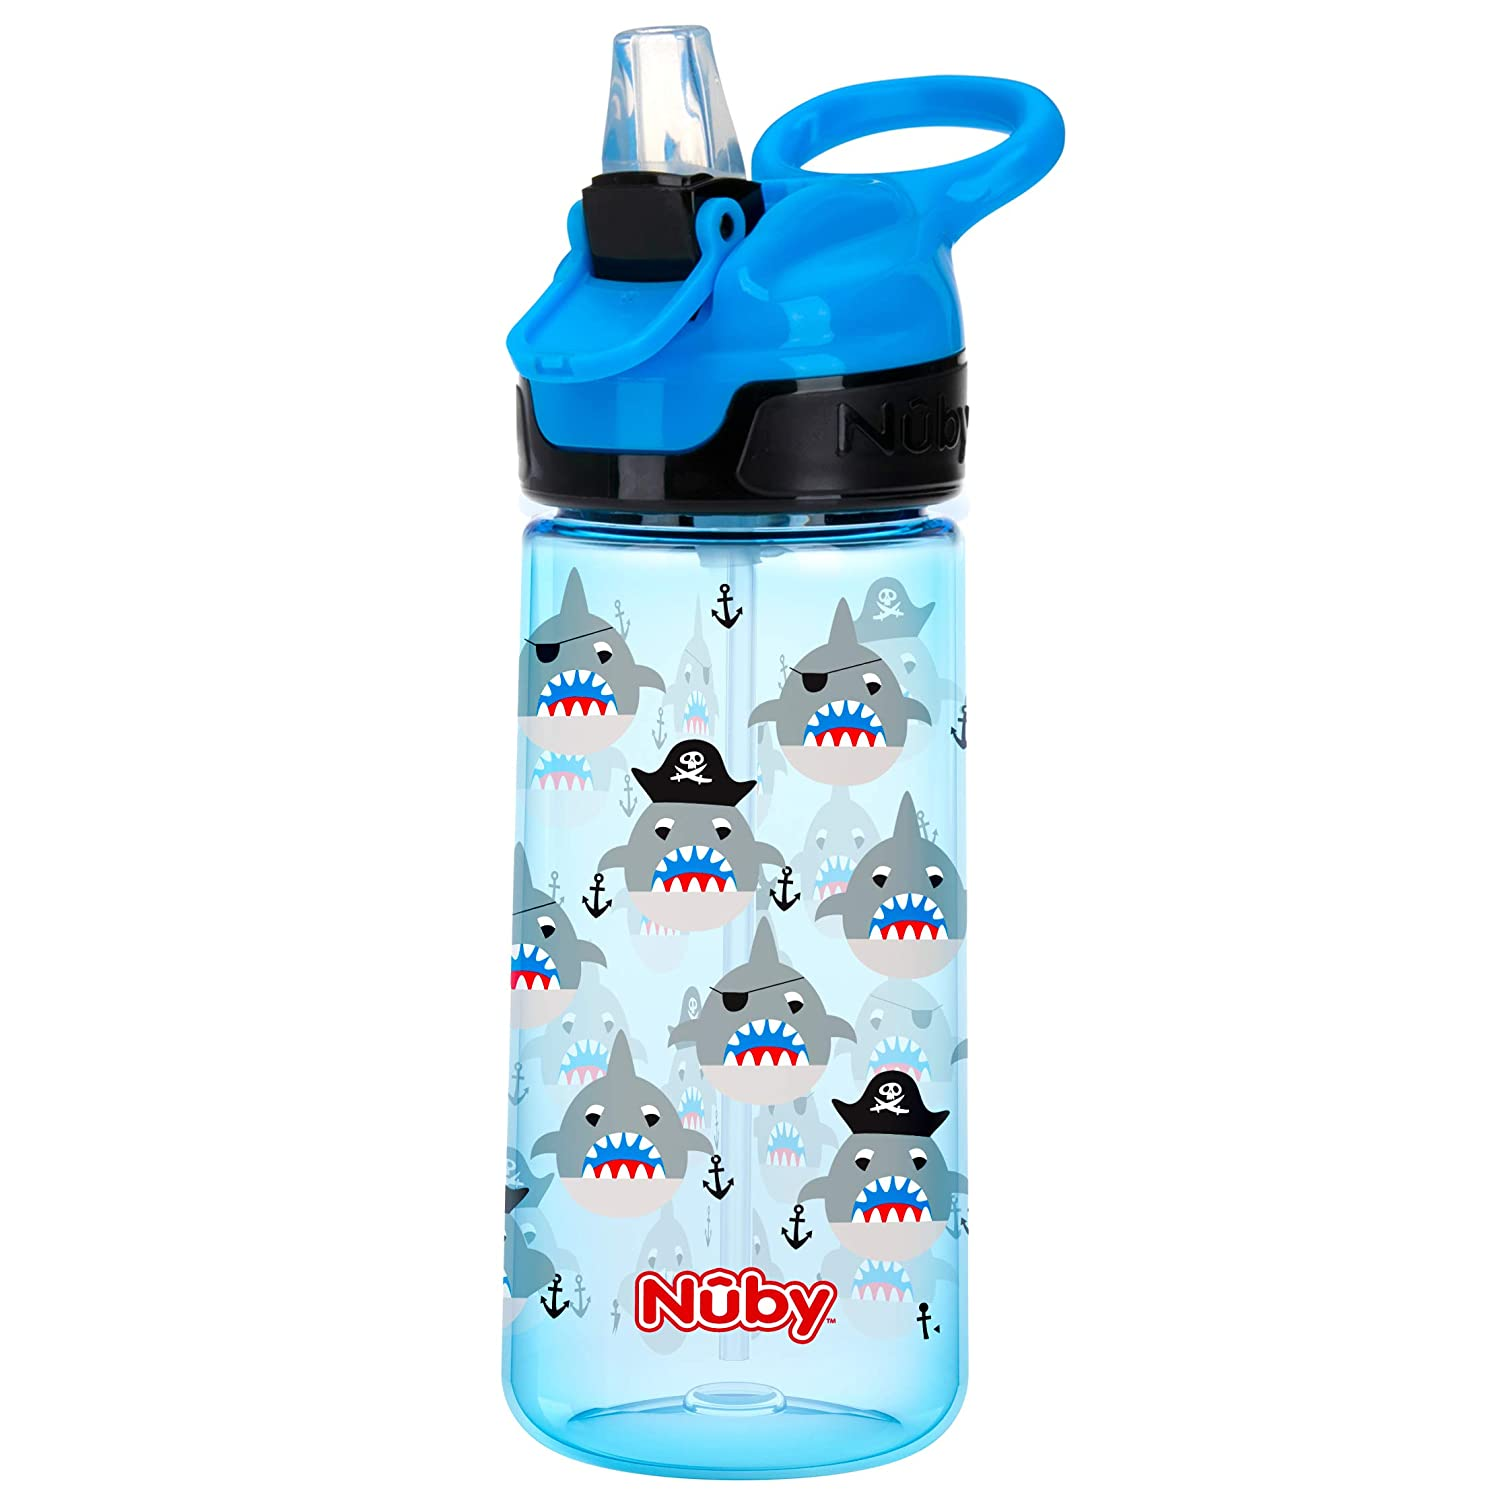 Nuby Push Button Flip-it Soft Spout Tritan Water Bottle, Blue Sharks, 18 Oz